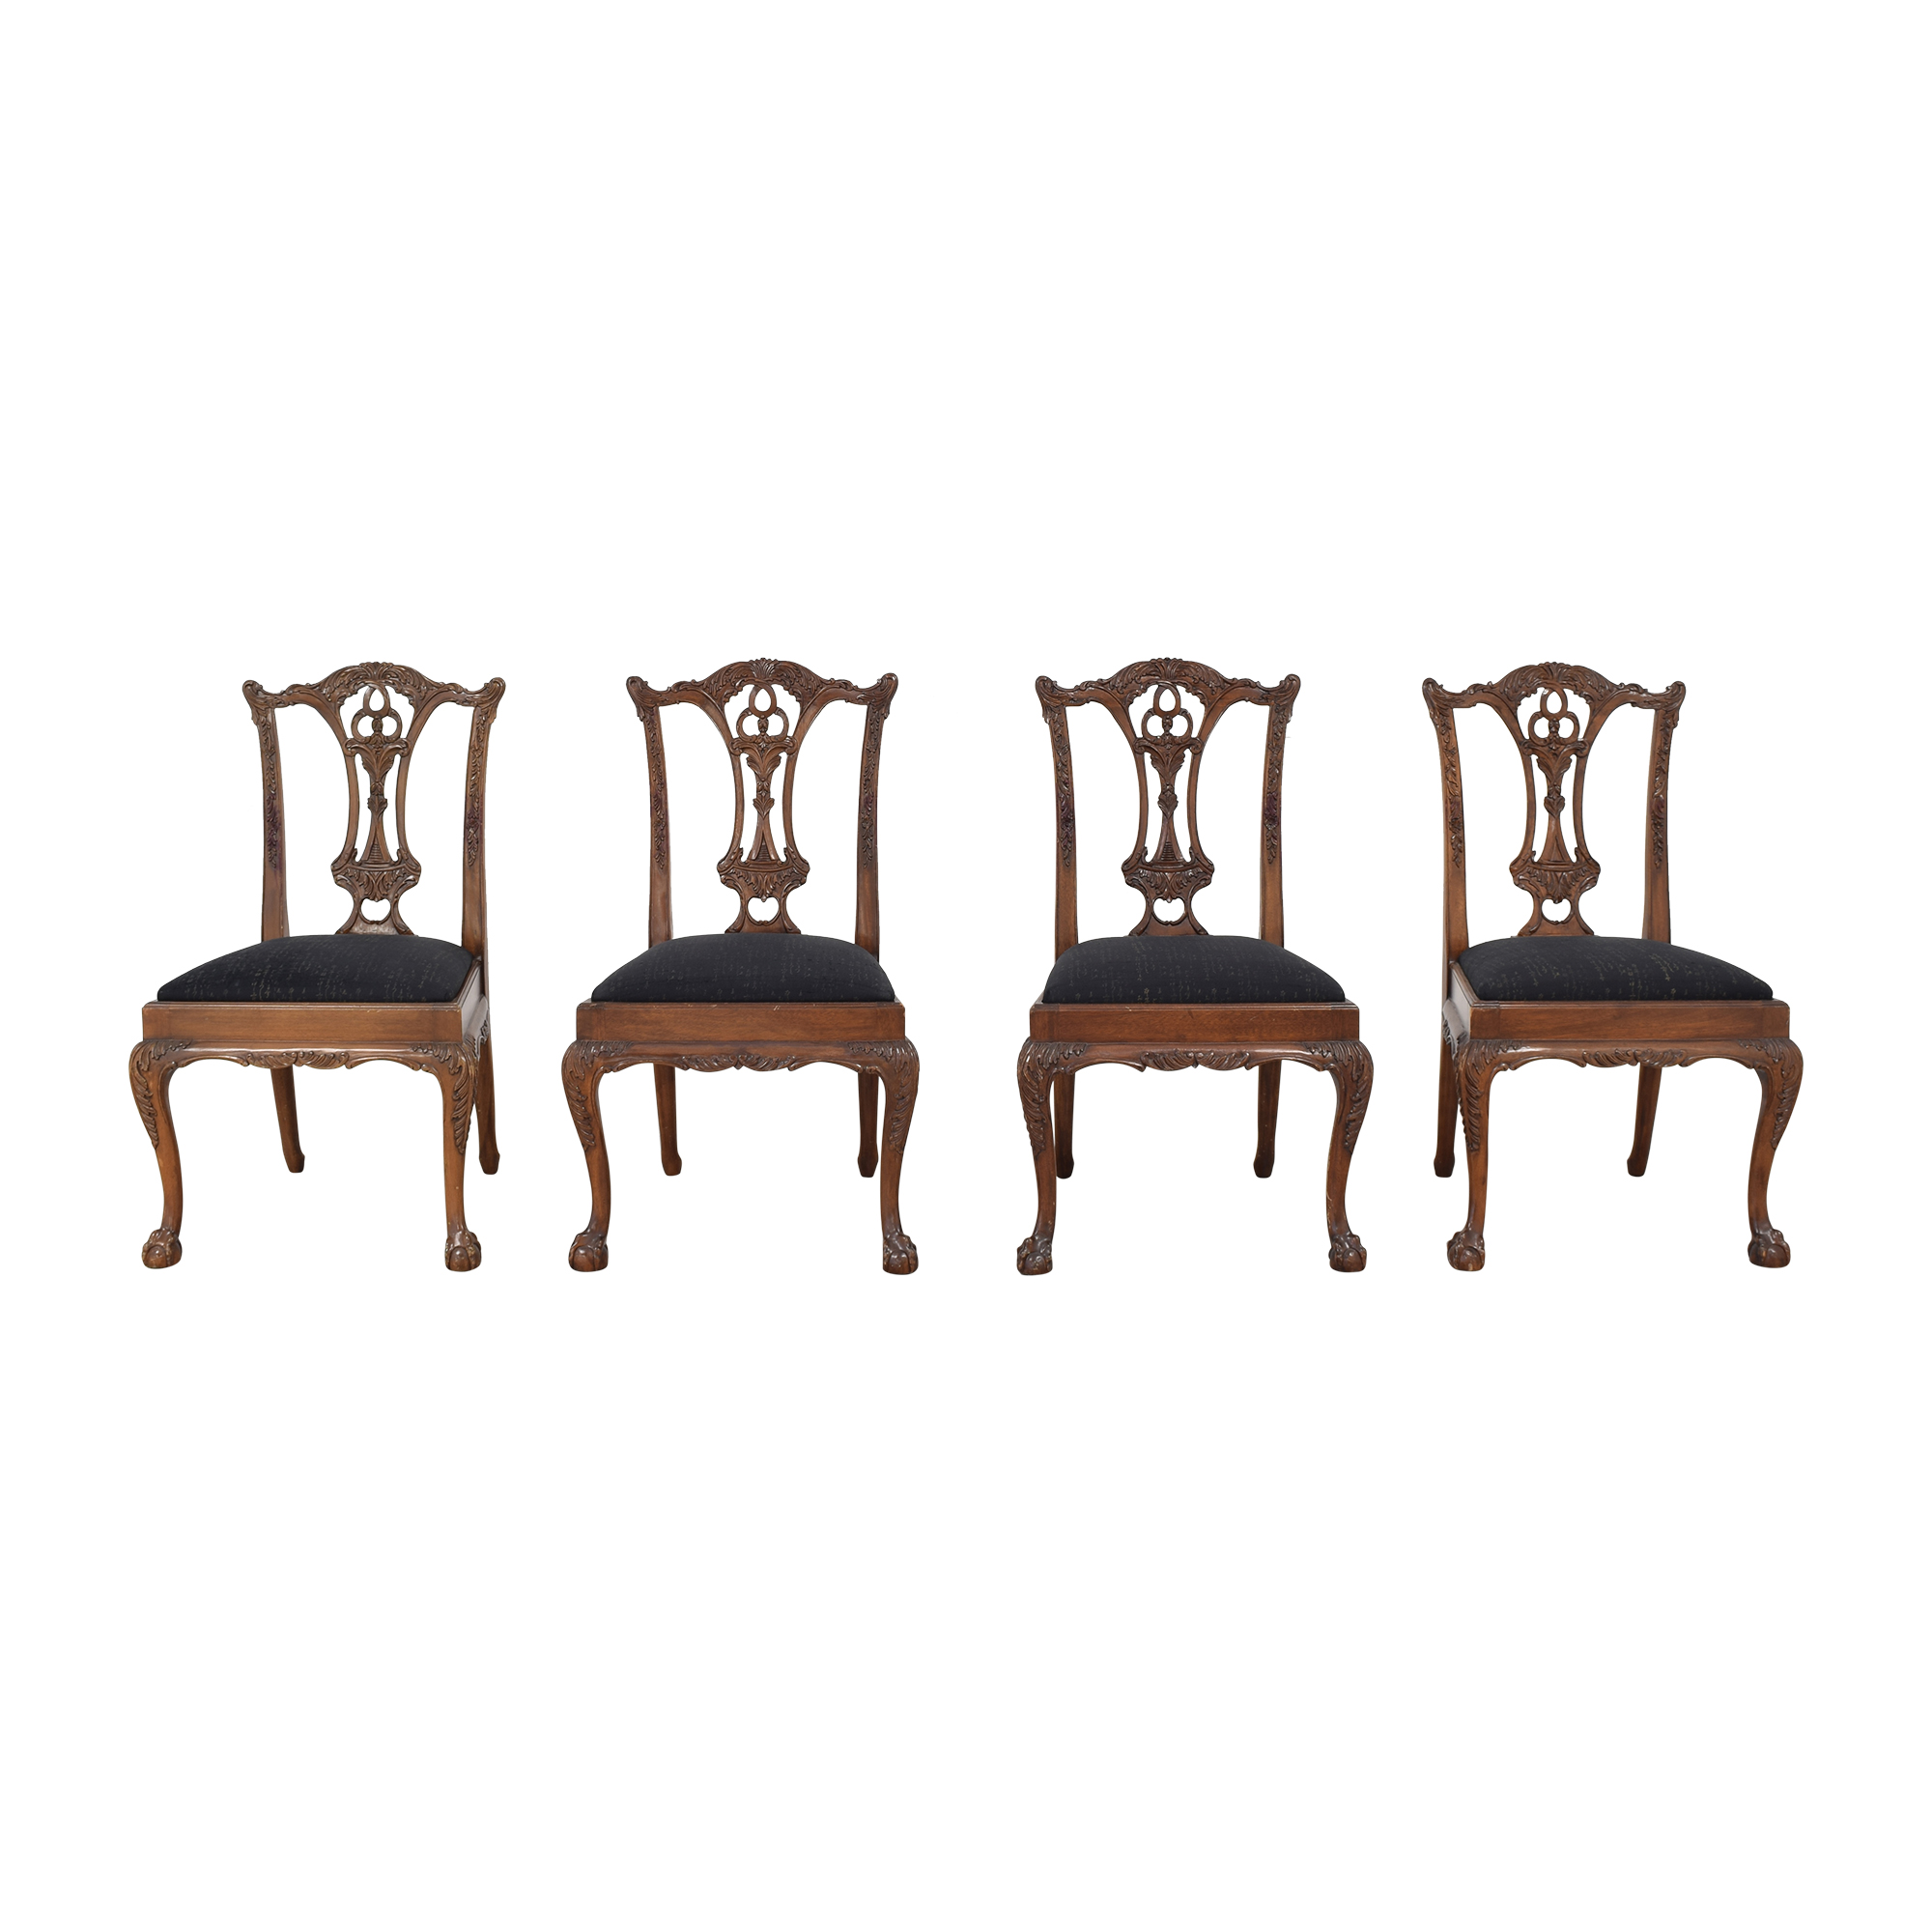 Maitland-Smith Maitland-Smith Carved Chippendale Style Dining Chairs